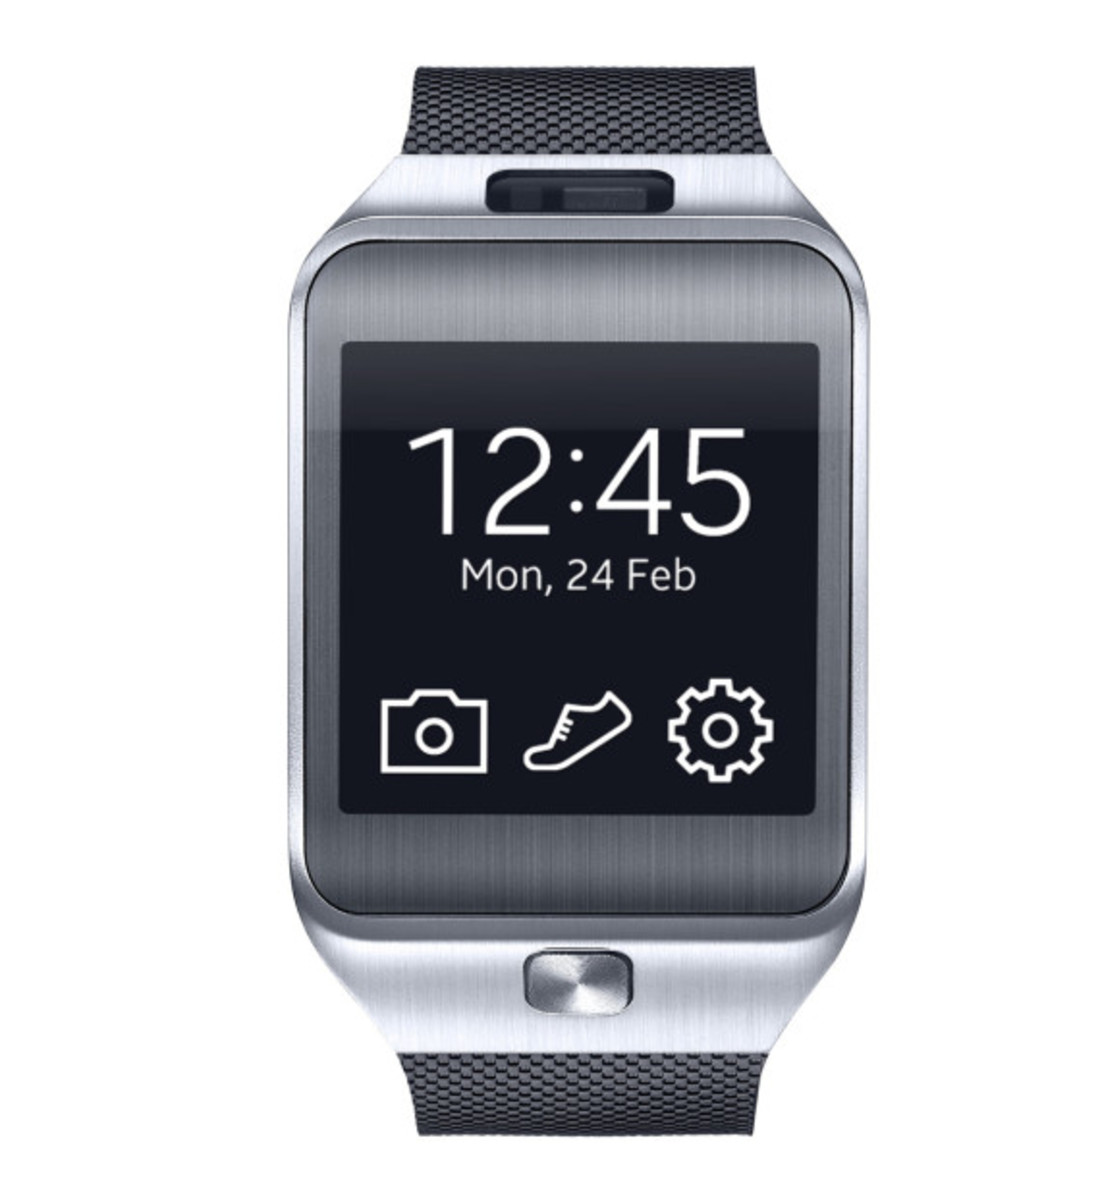 samsung-introduces-gear-2-and-gear-2-neo-smartwatches-03